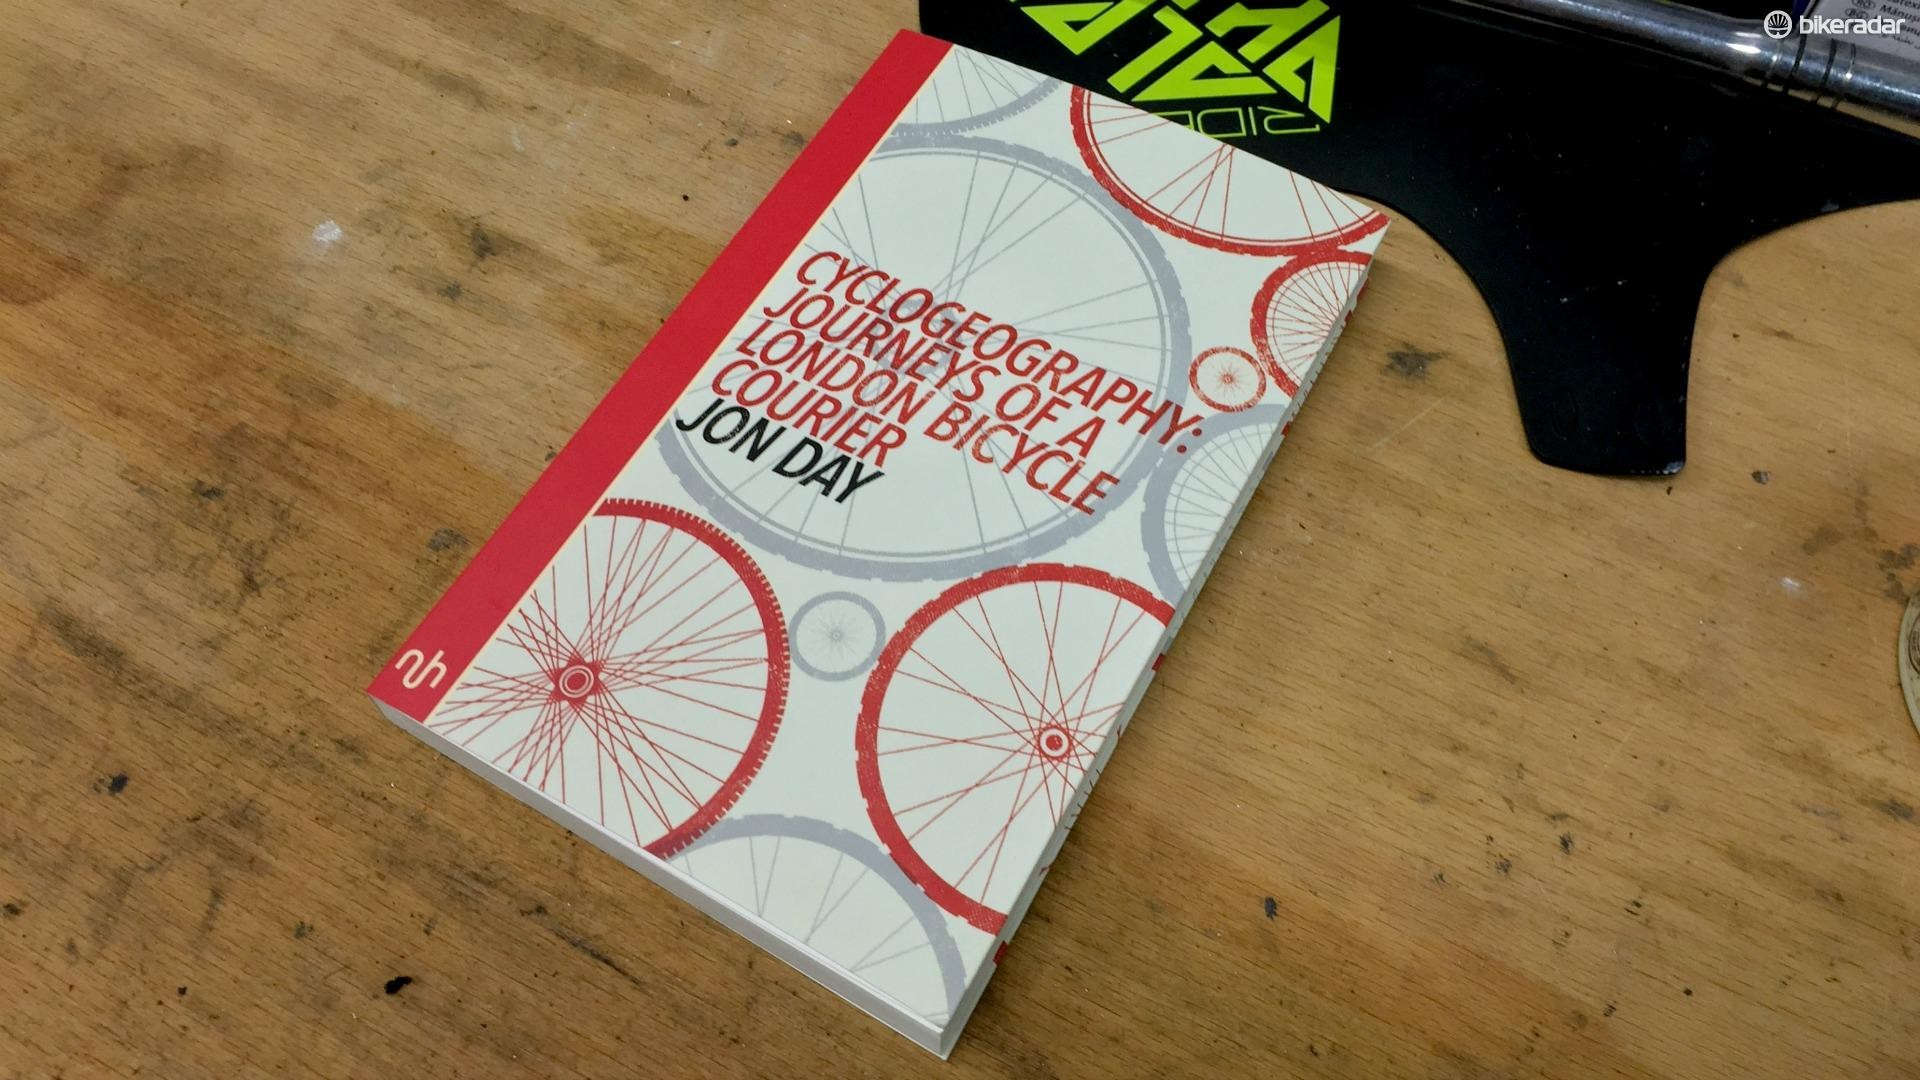 Perfect reading for your bike trip downtime